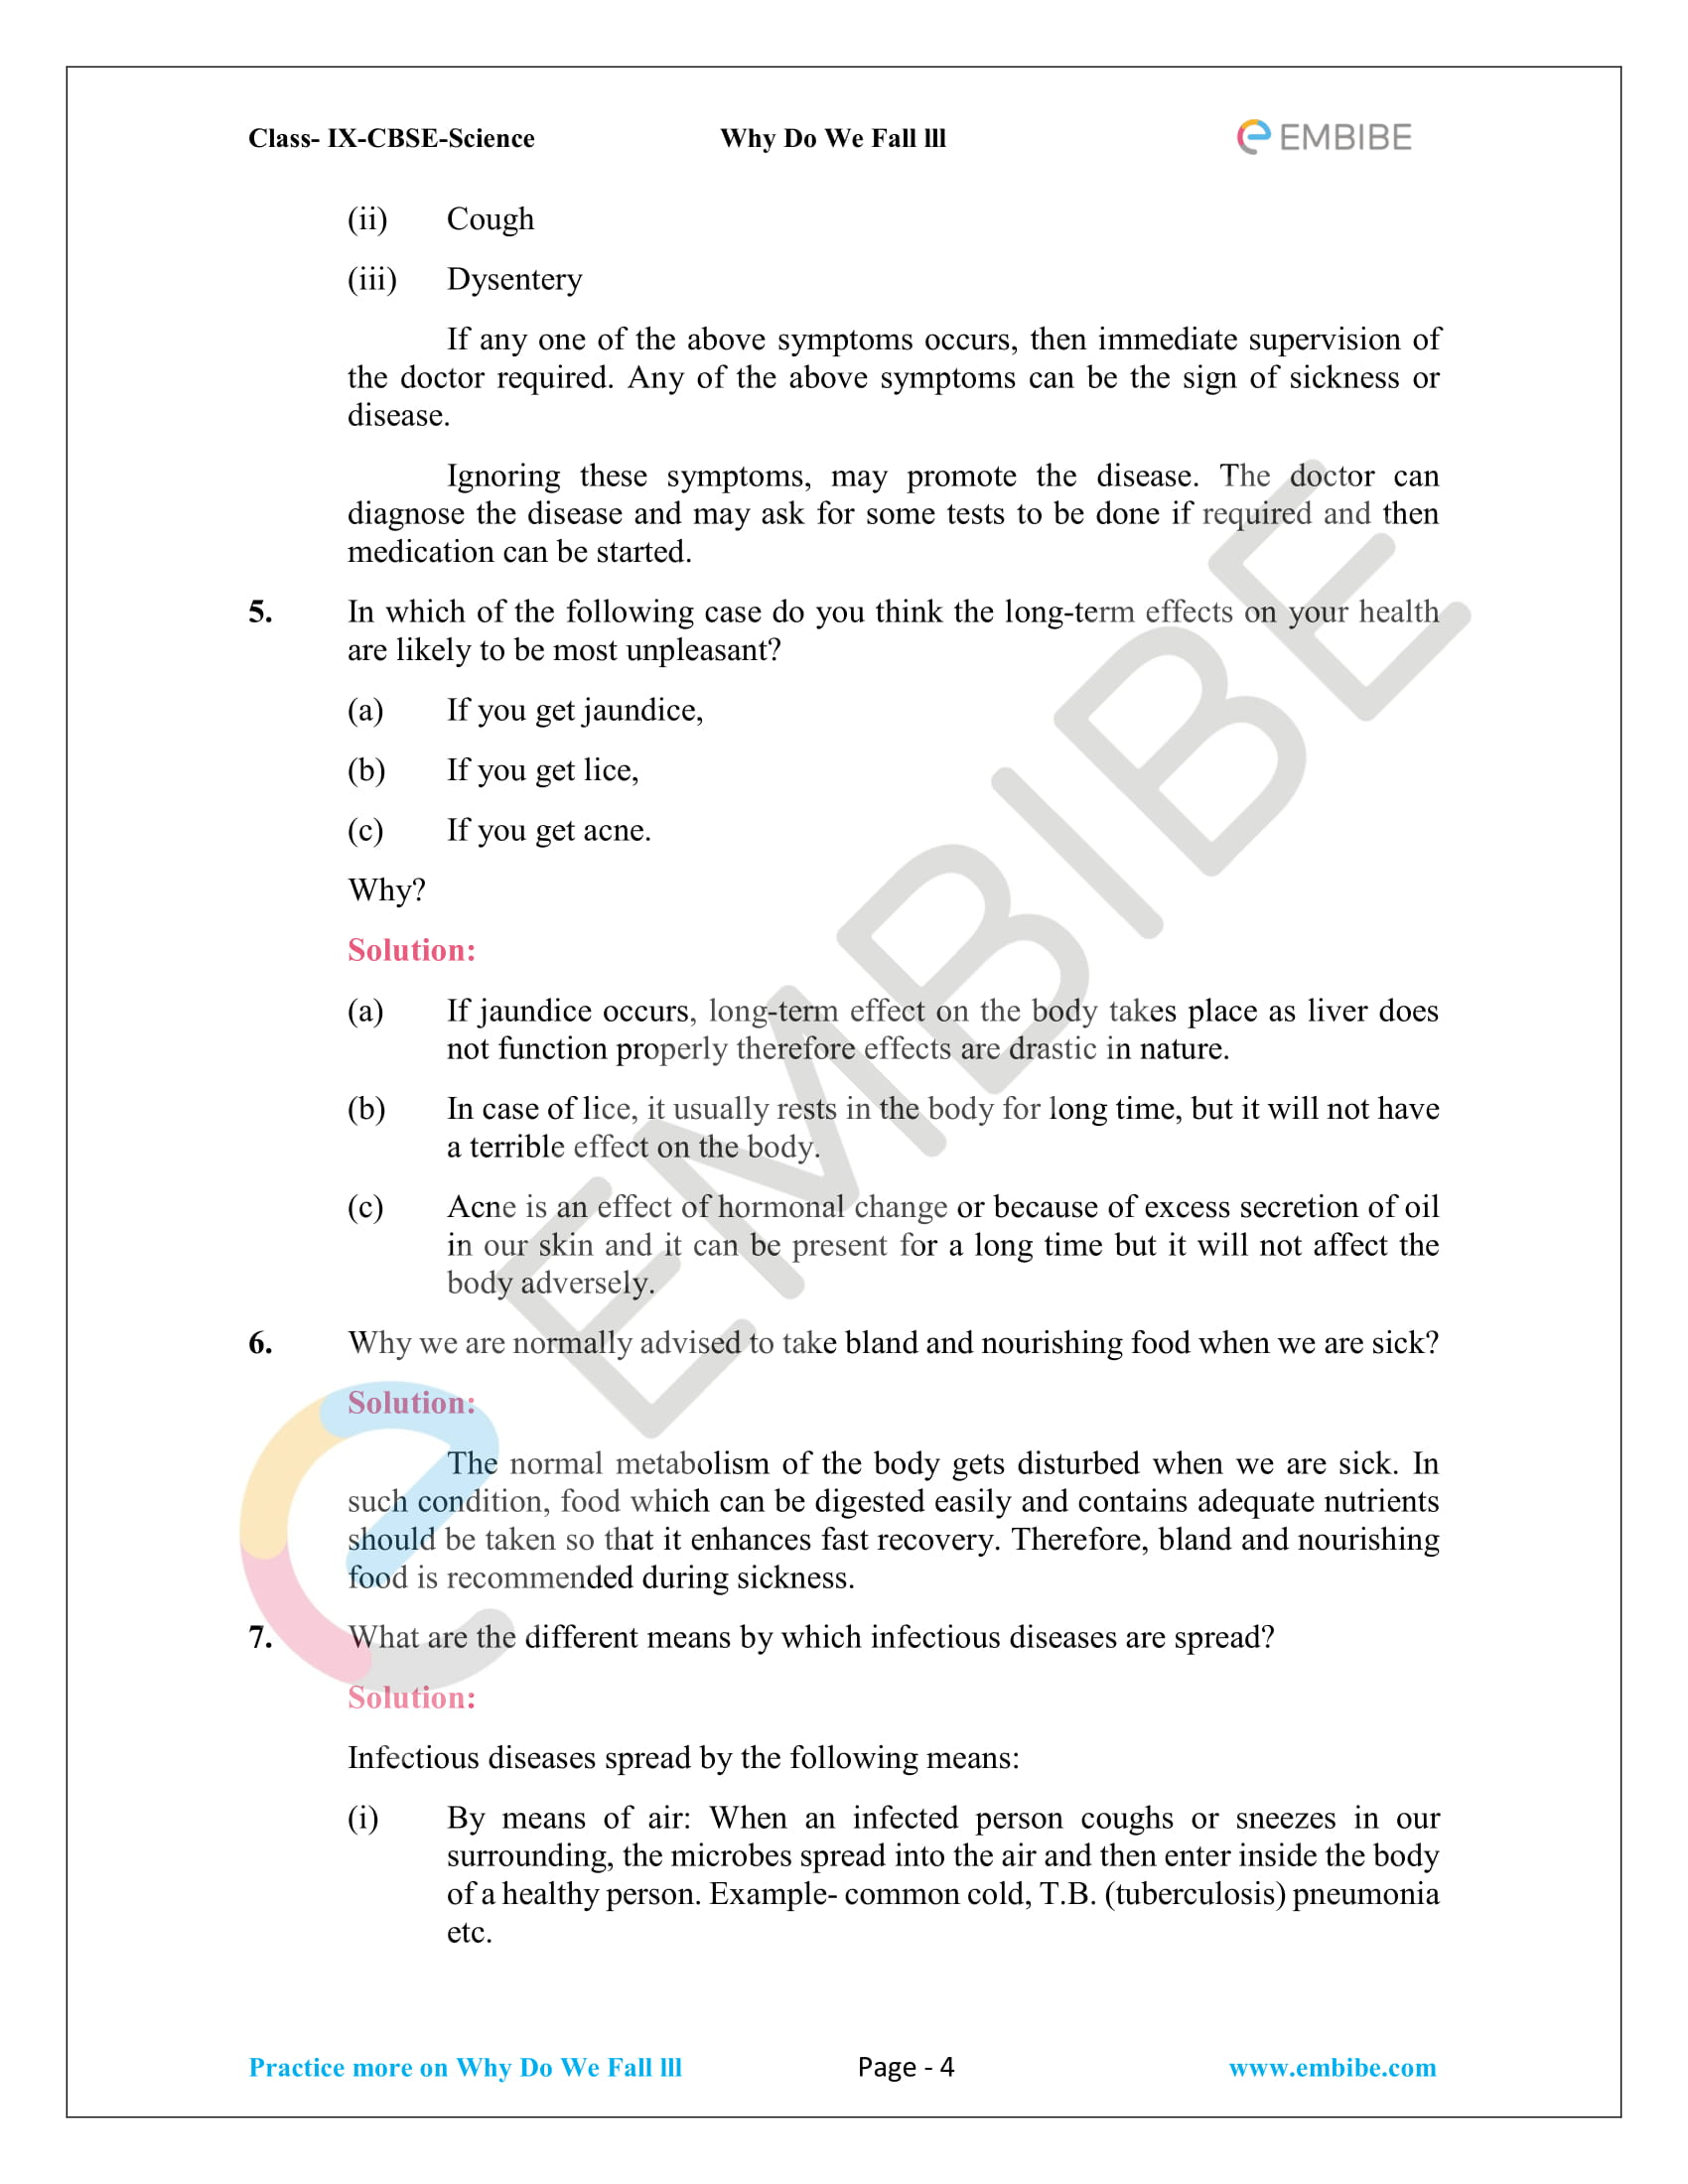 CBSE NCERT Solutions for Class 9 Science Chapter 13-4